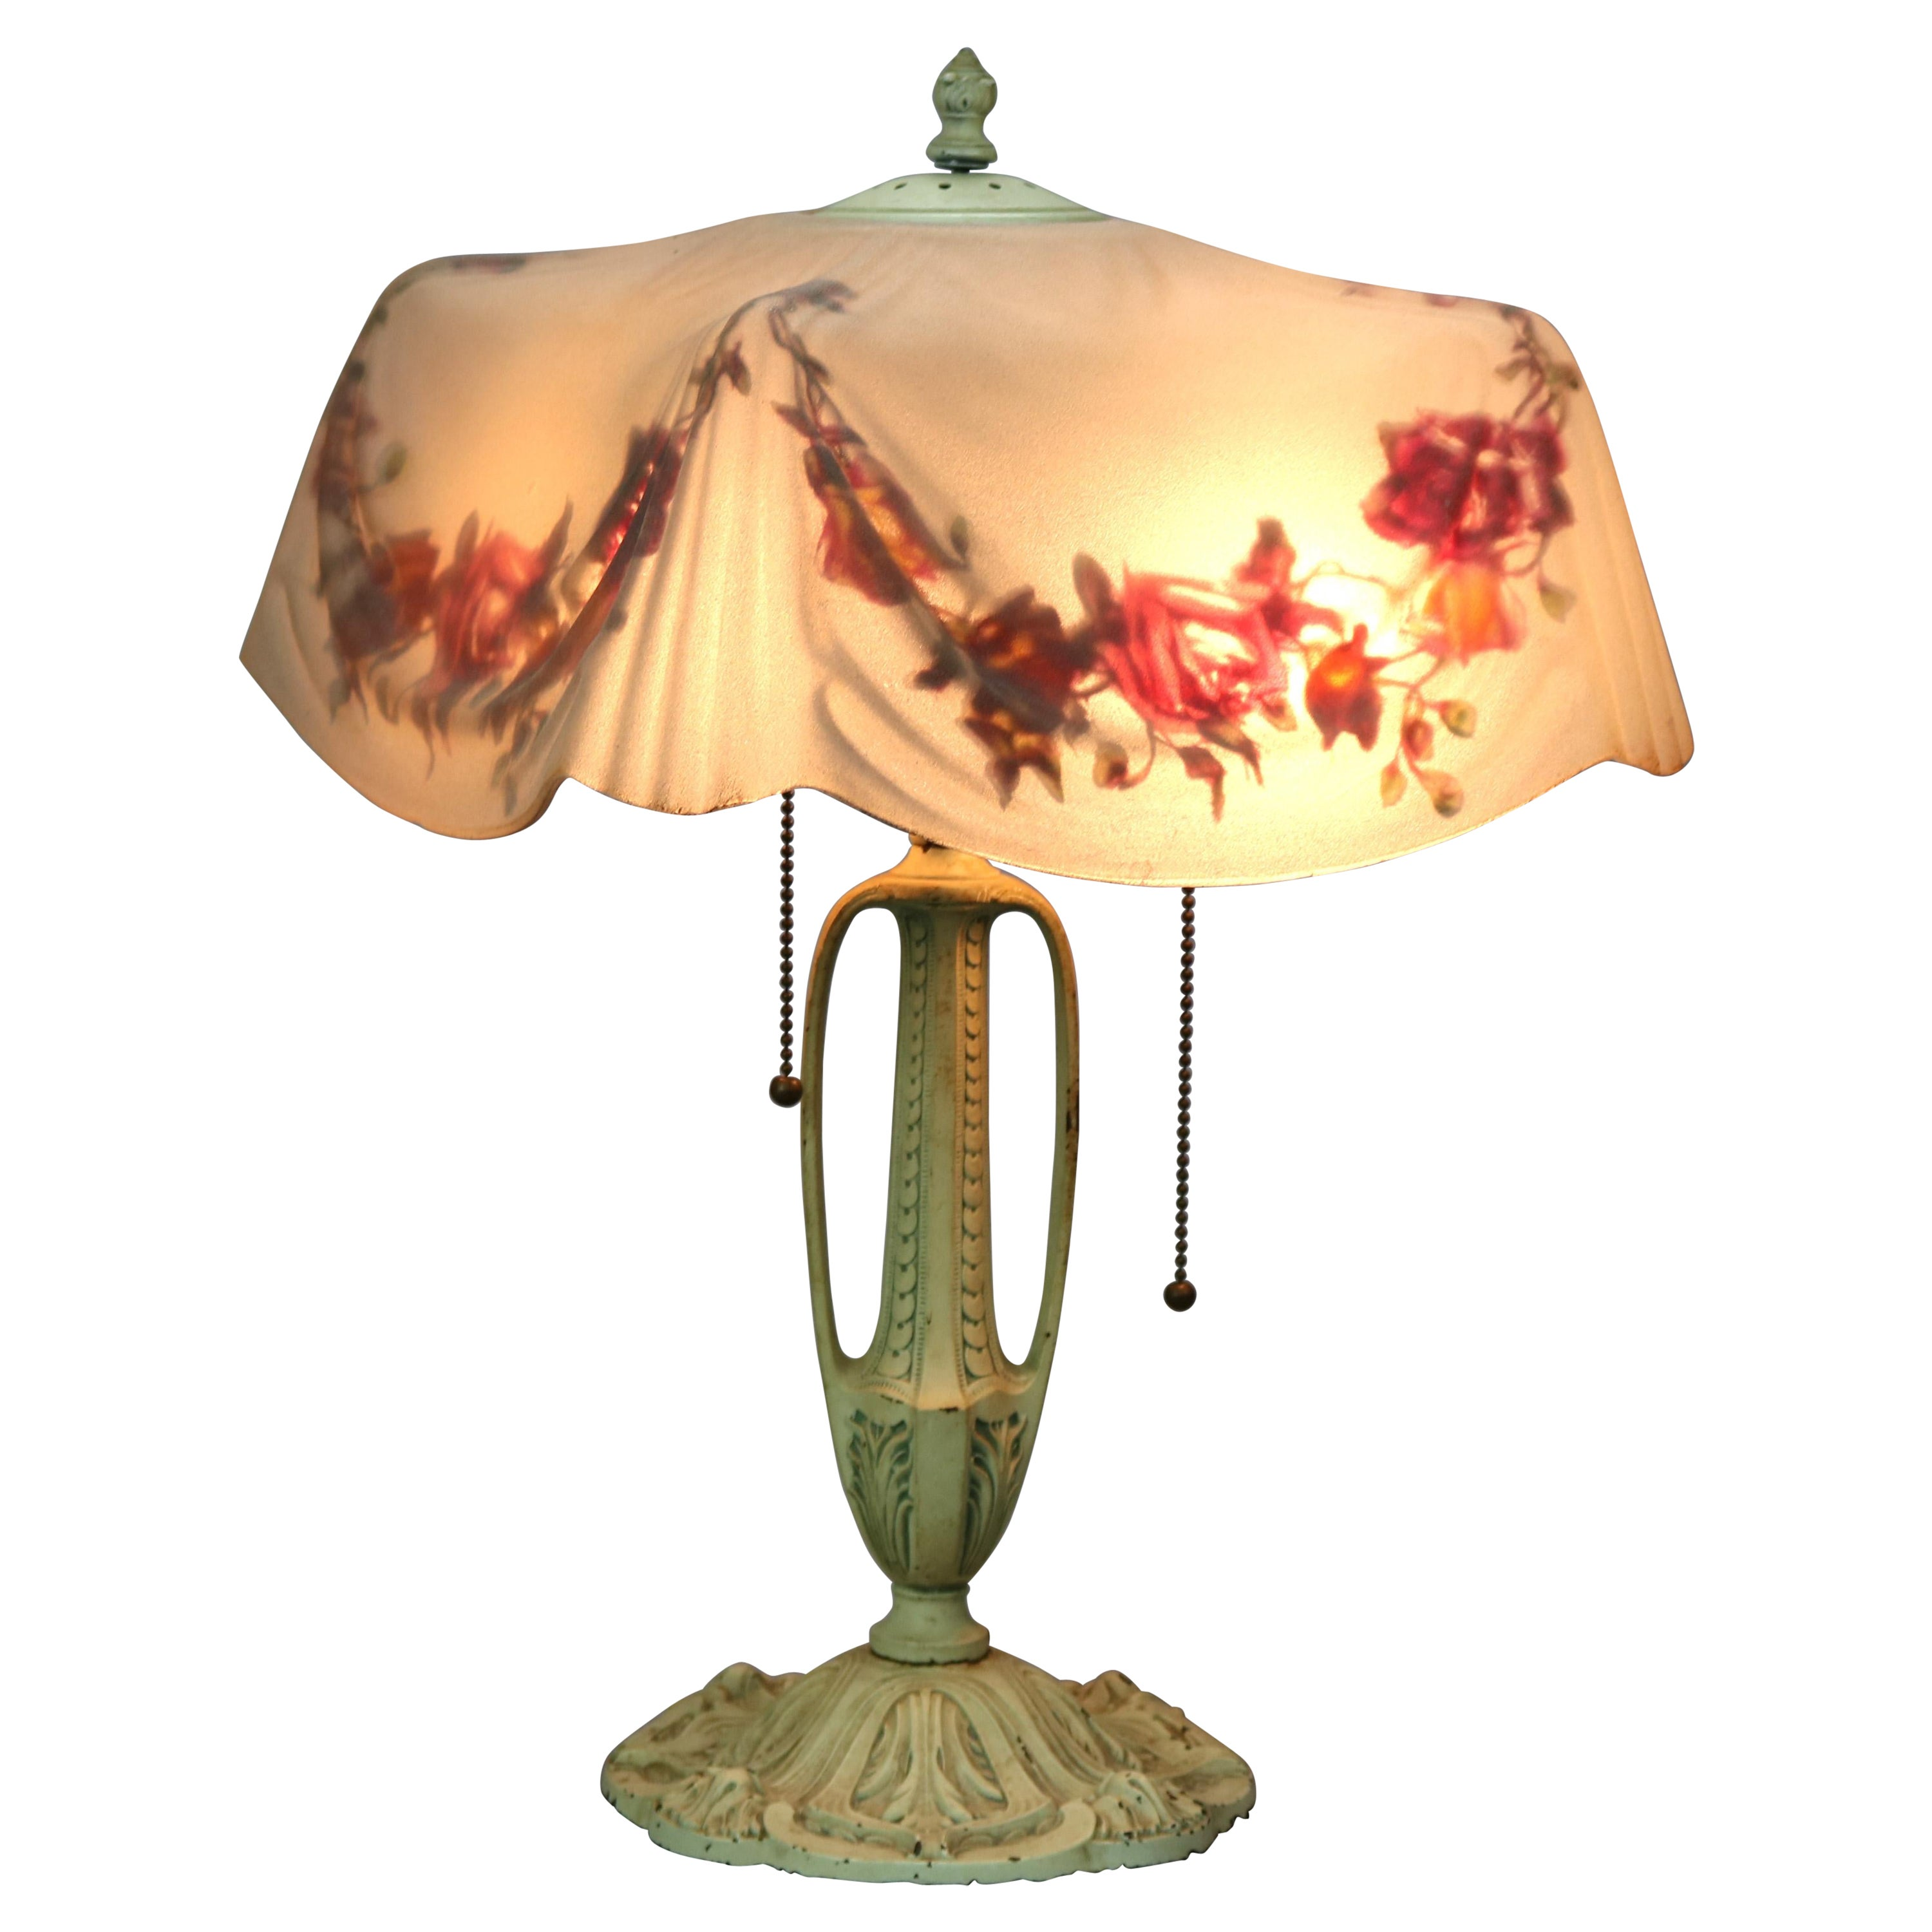 Antique Reverse Painted Pittsburgh Table Lamp with Molded Drapery Shade, c 1910